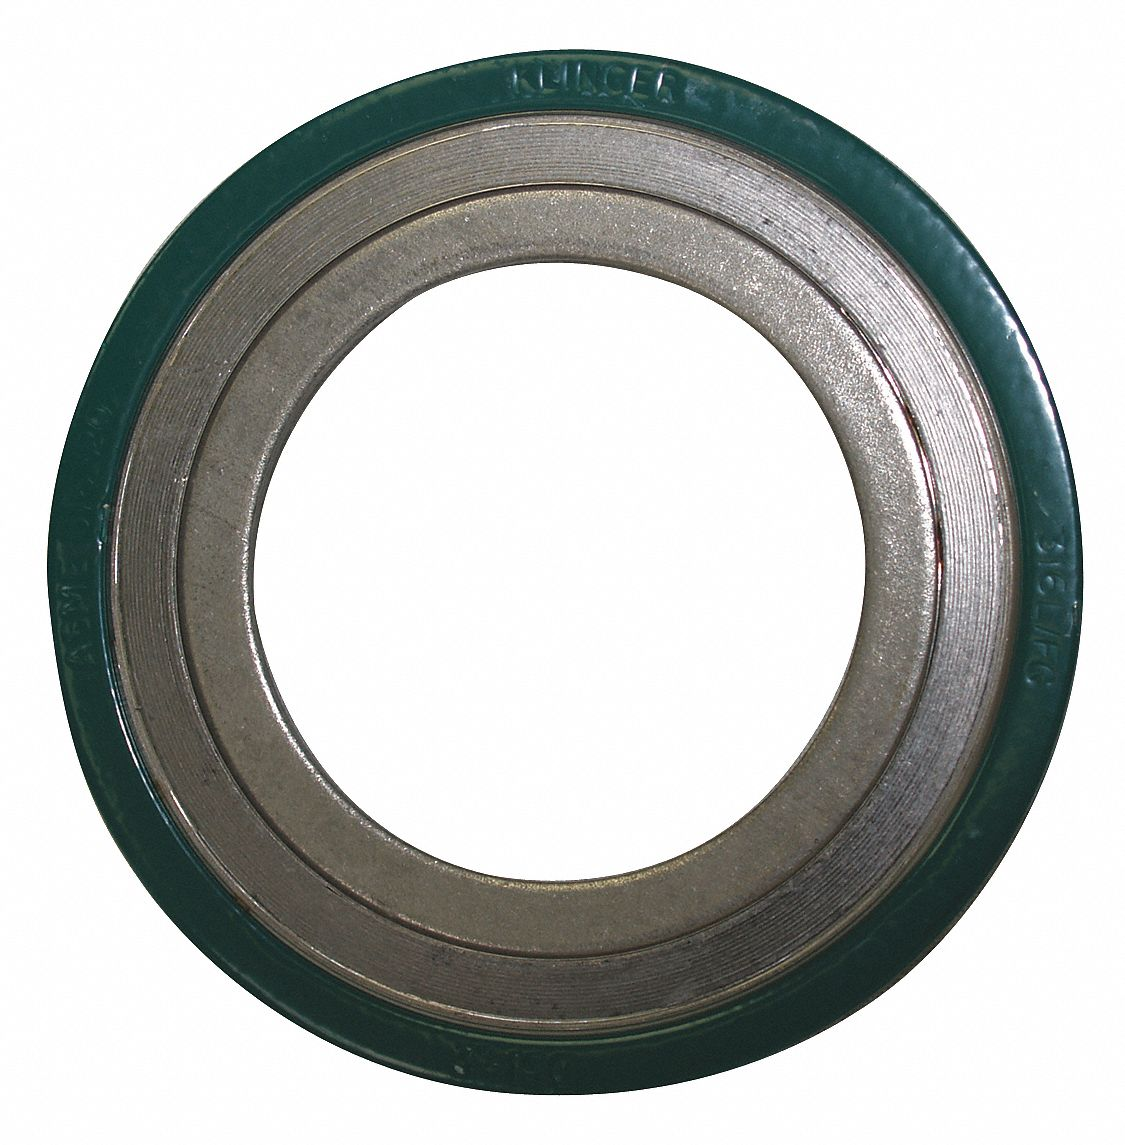 Precision Tolerance ASTM A313 36 Length Pack of 10 Spring Temper 0.036 Diameter Bright Finish WYTCH304-199 304 Stainless Steel Wire